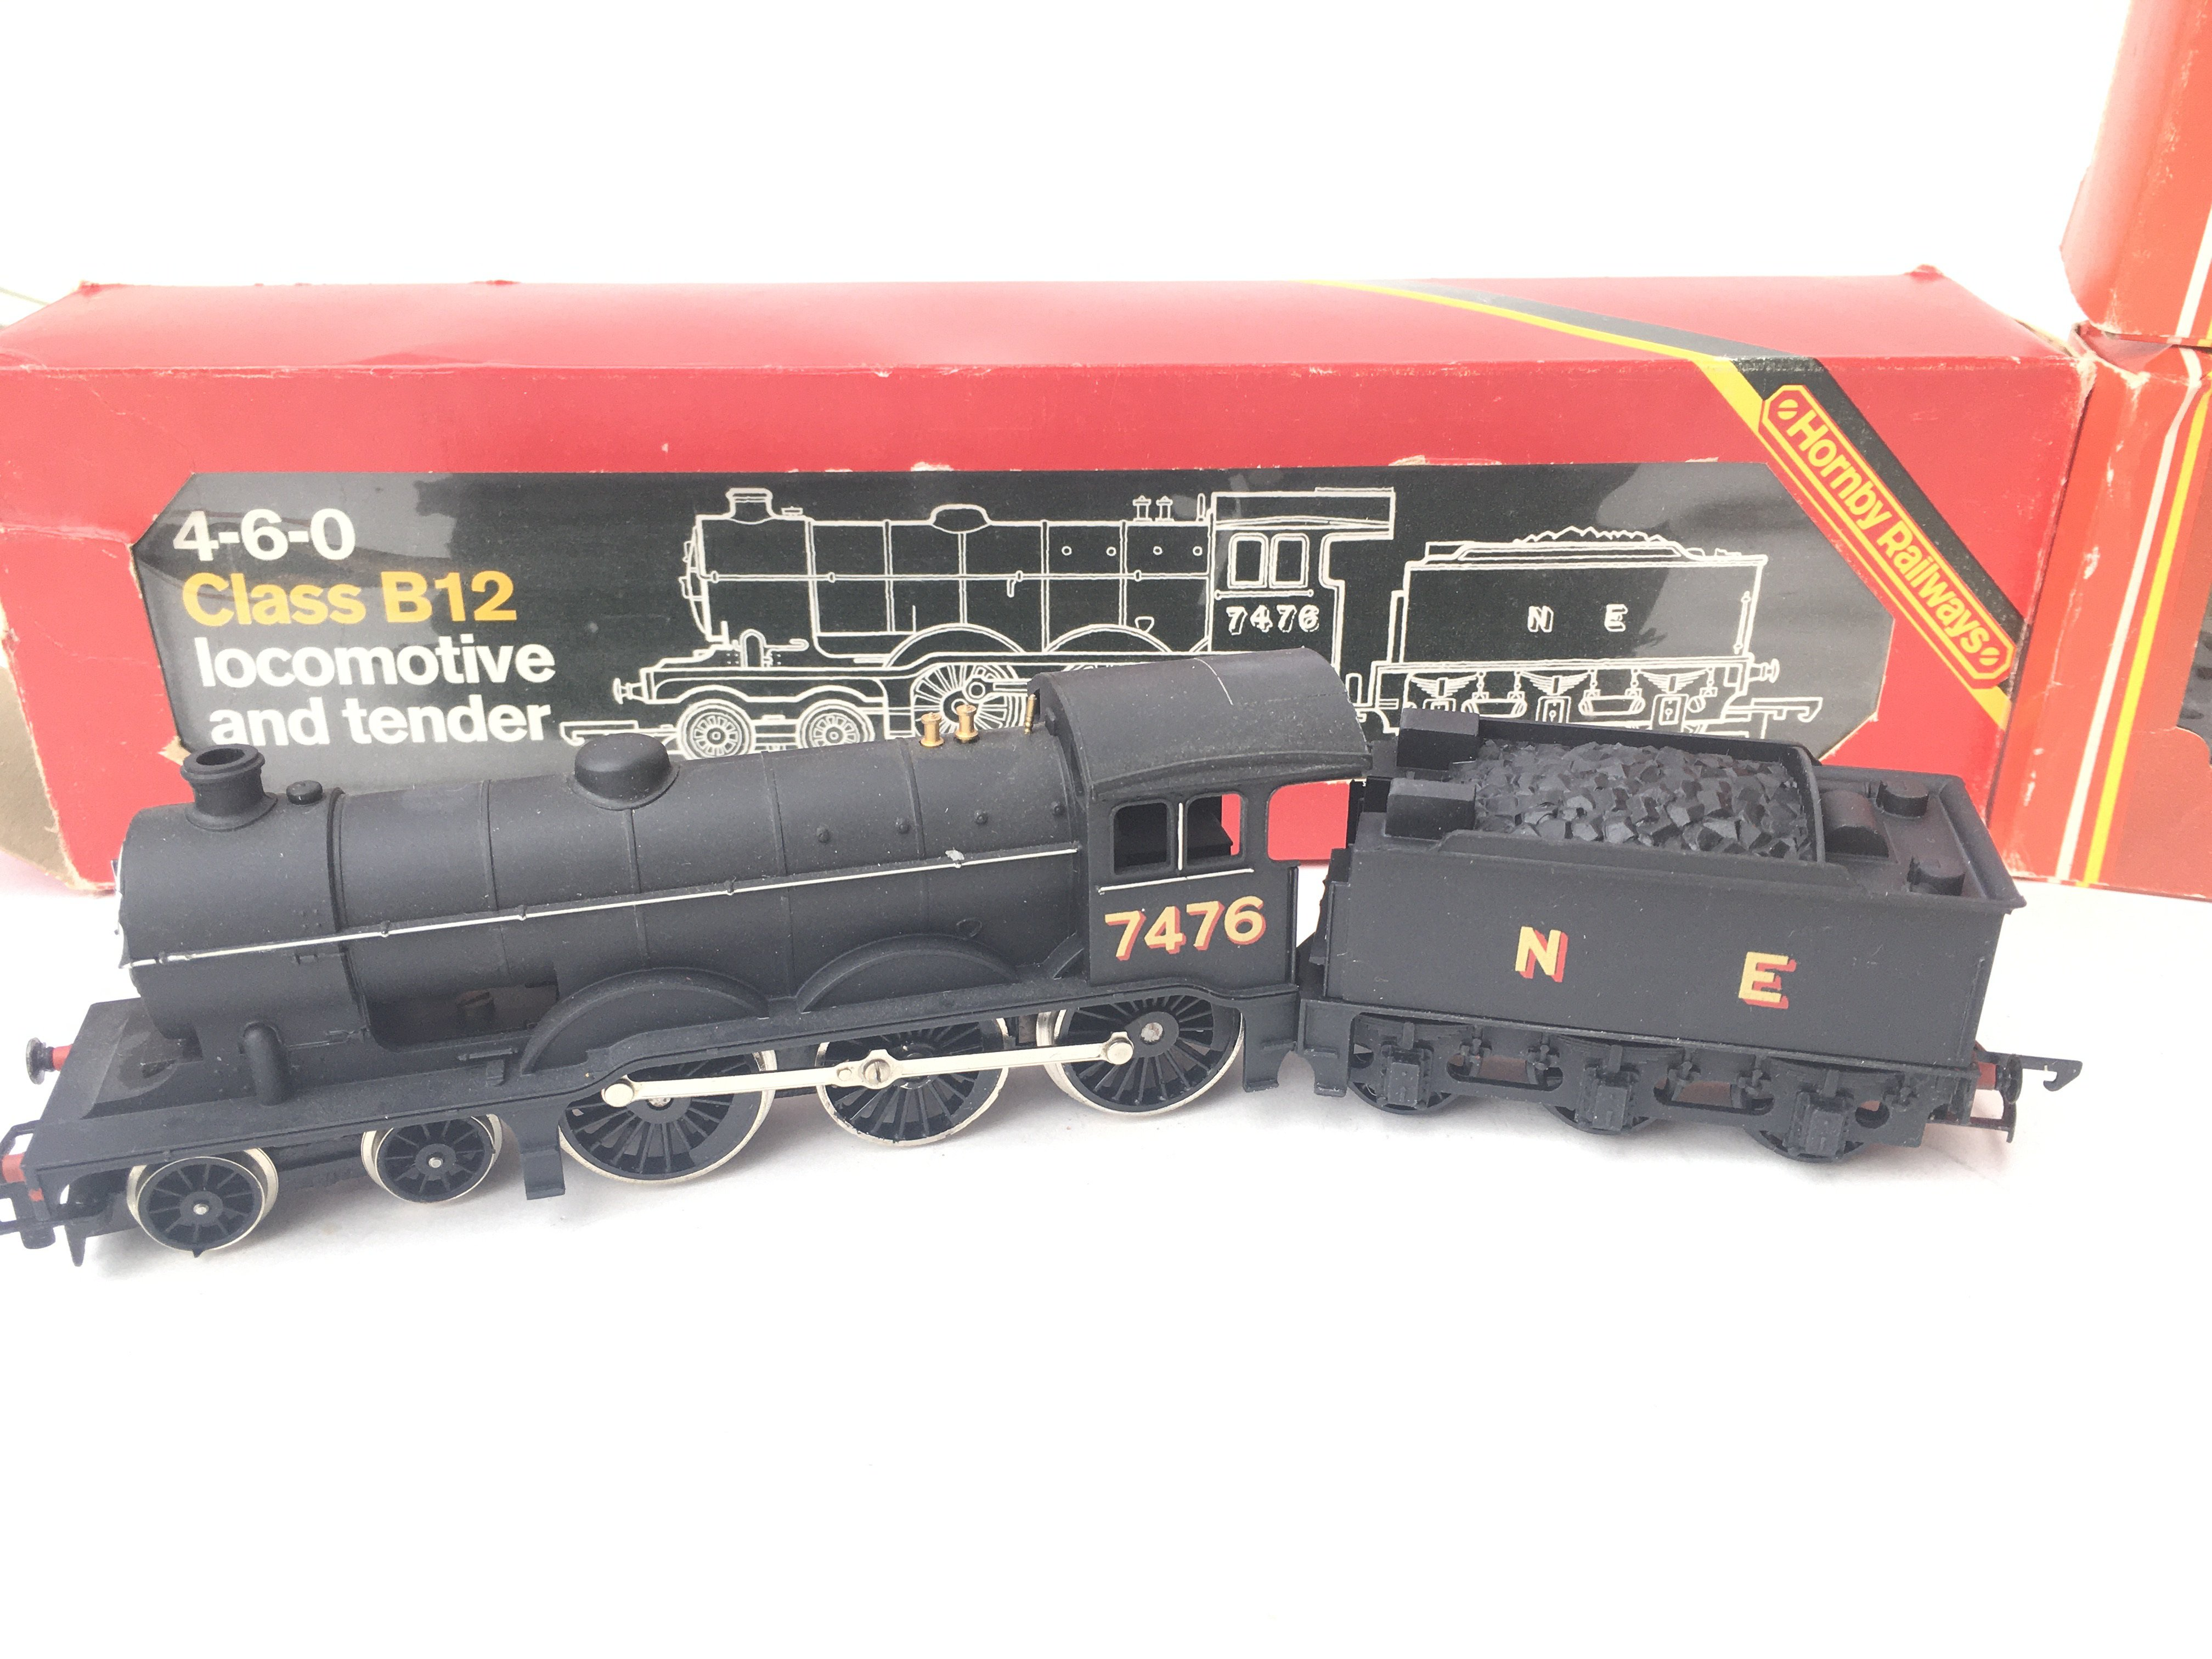 A Boxed Hornby 00 Gauge Class B12 Locomotive # R.0 - Image 2 of 4